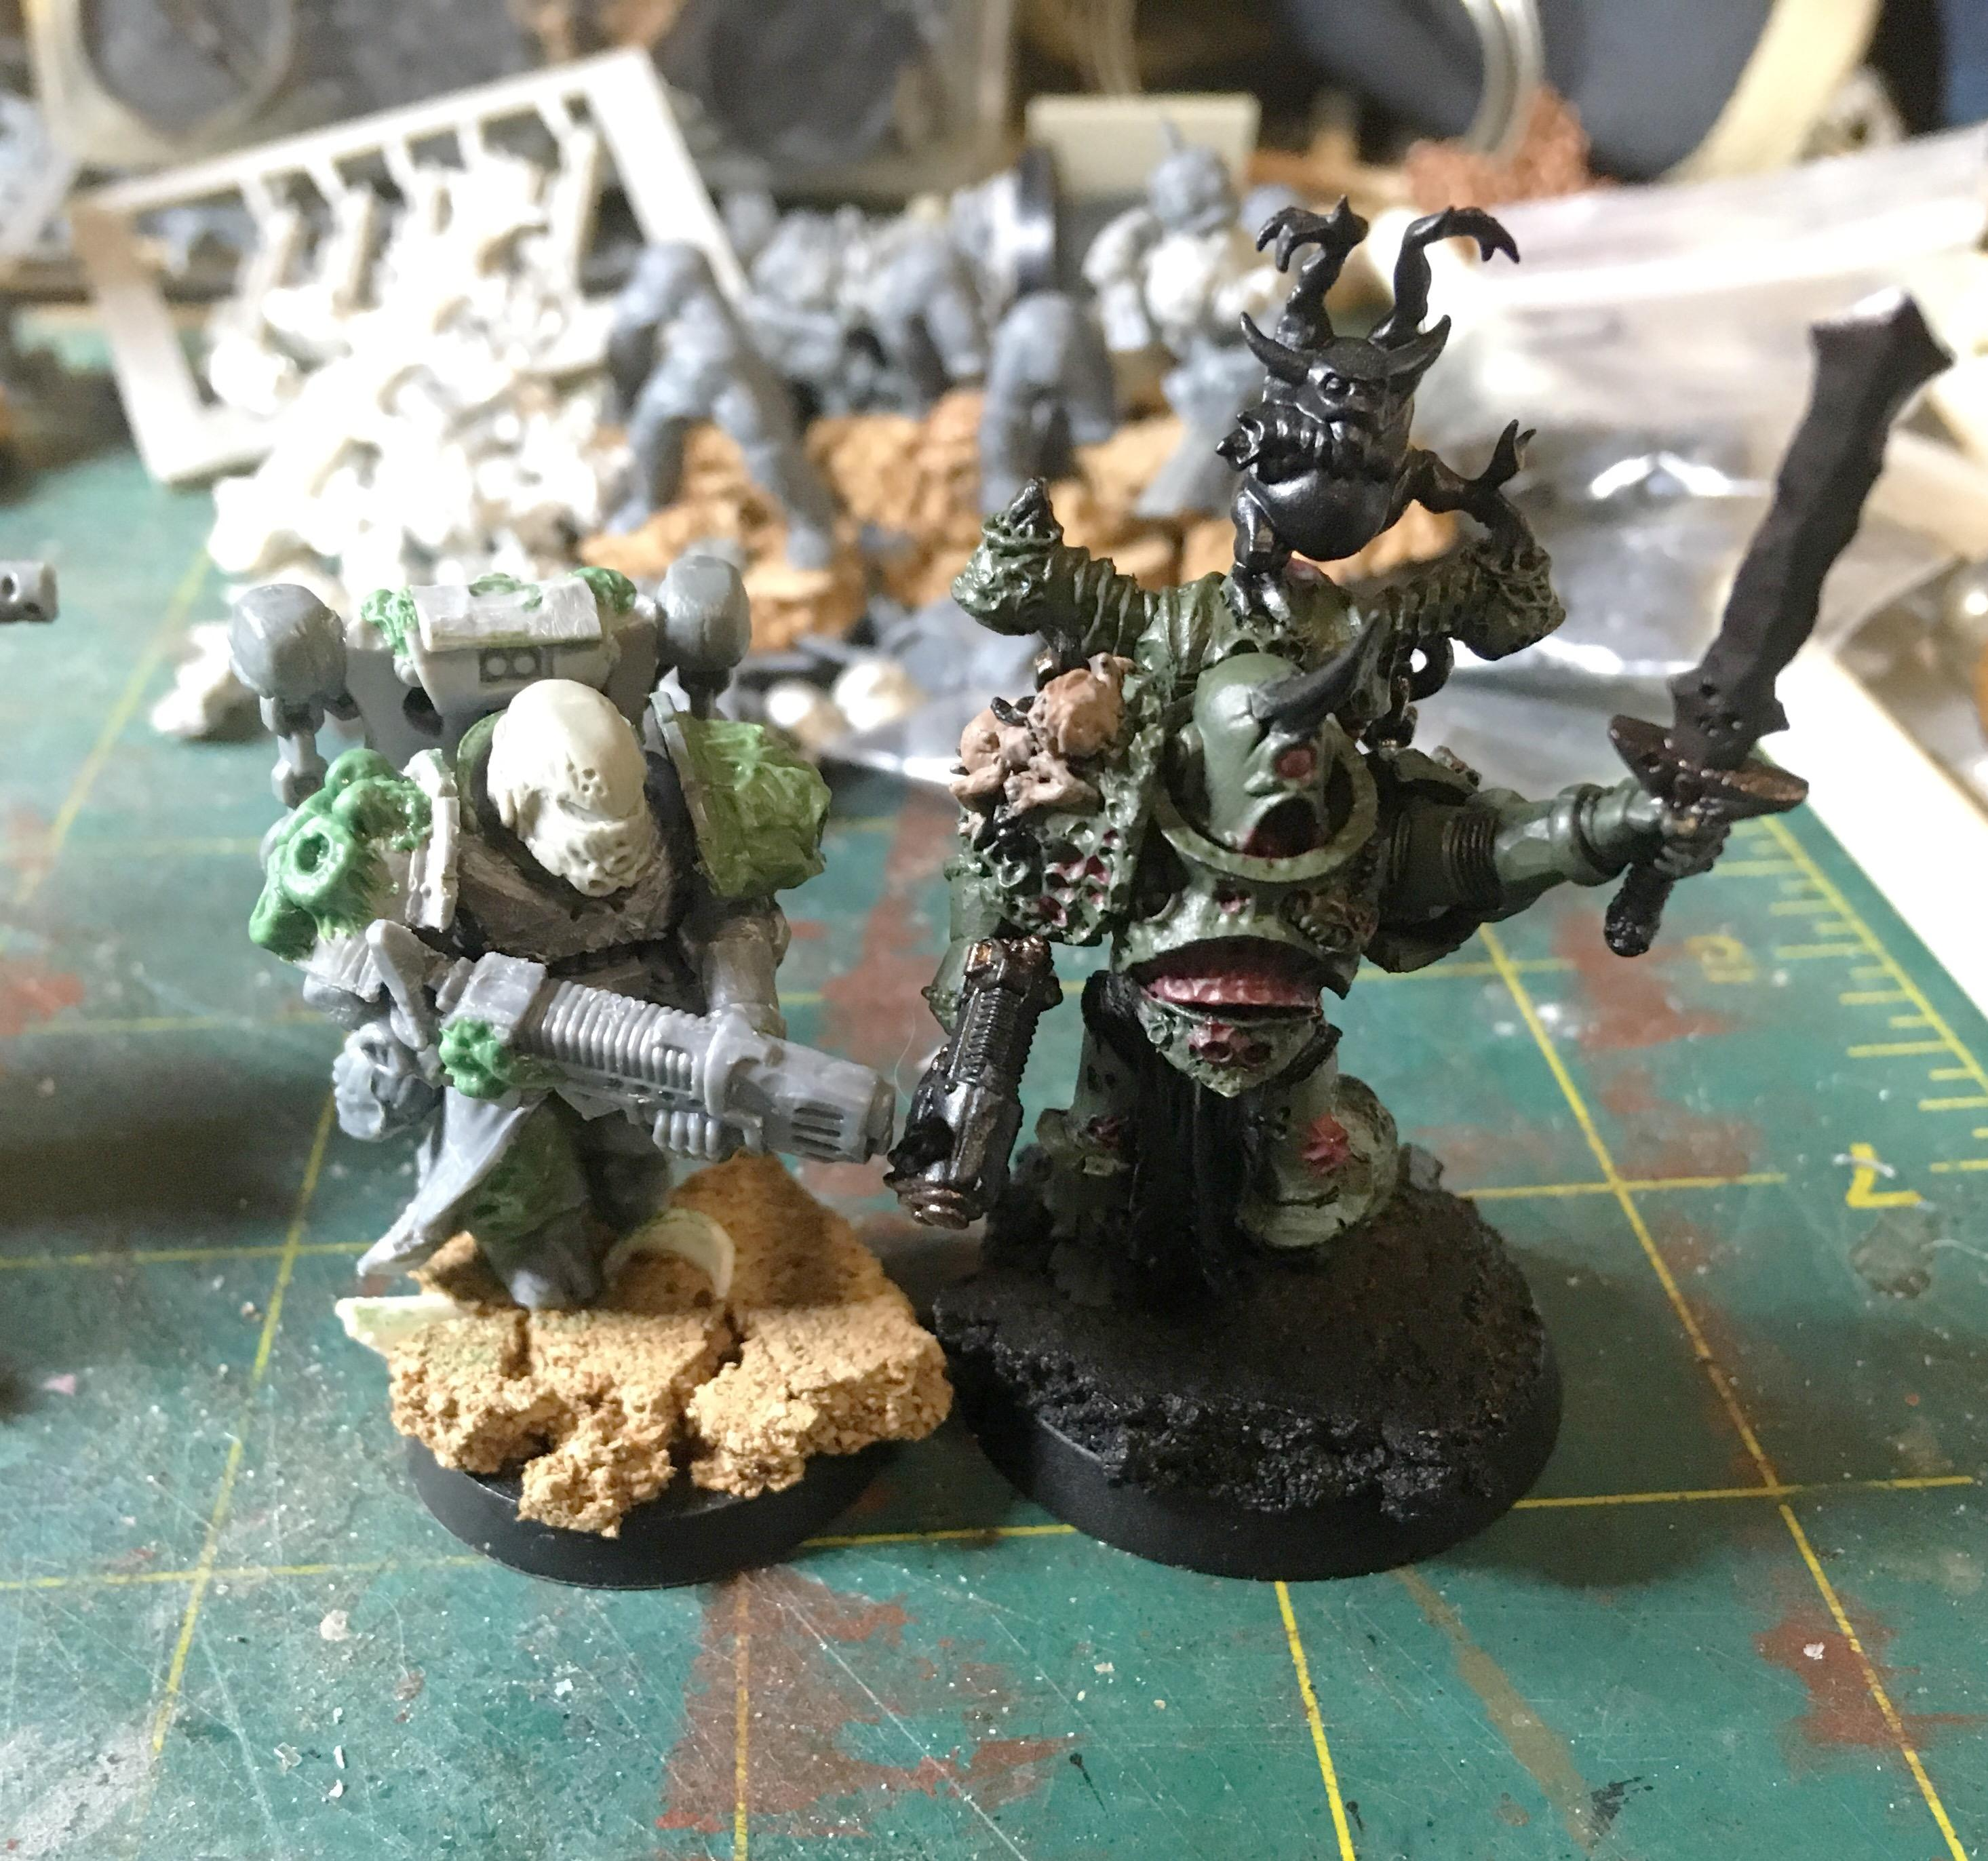 There's plenty of bits to make some Death Guard and other Chaos goodness